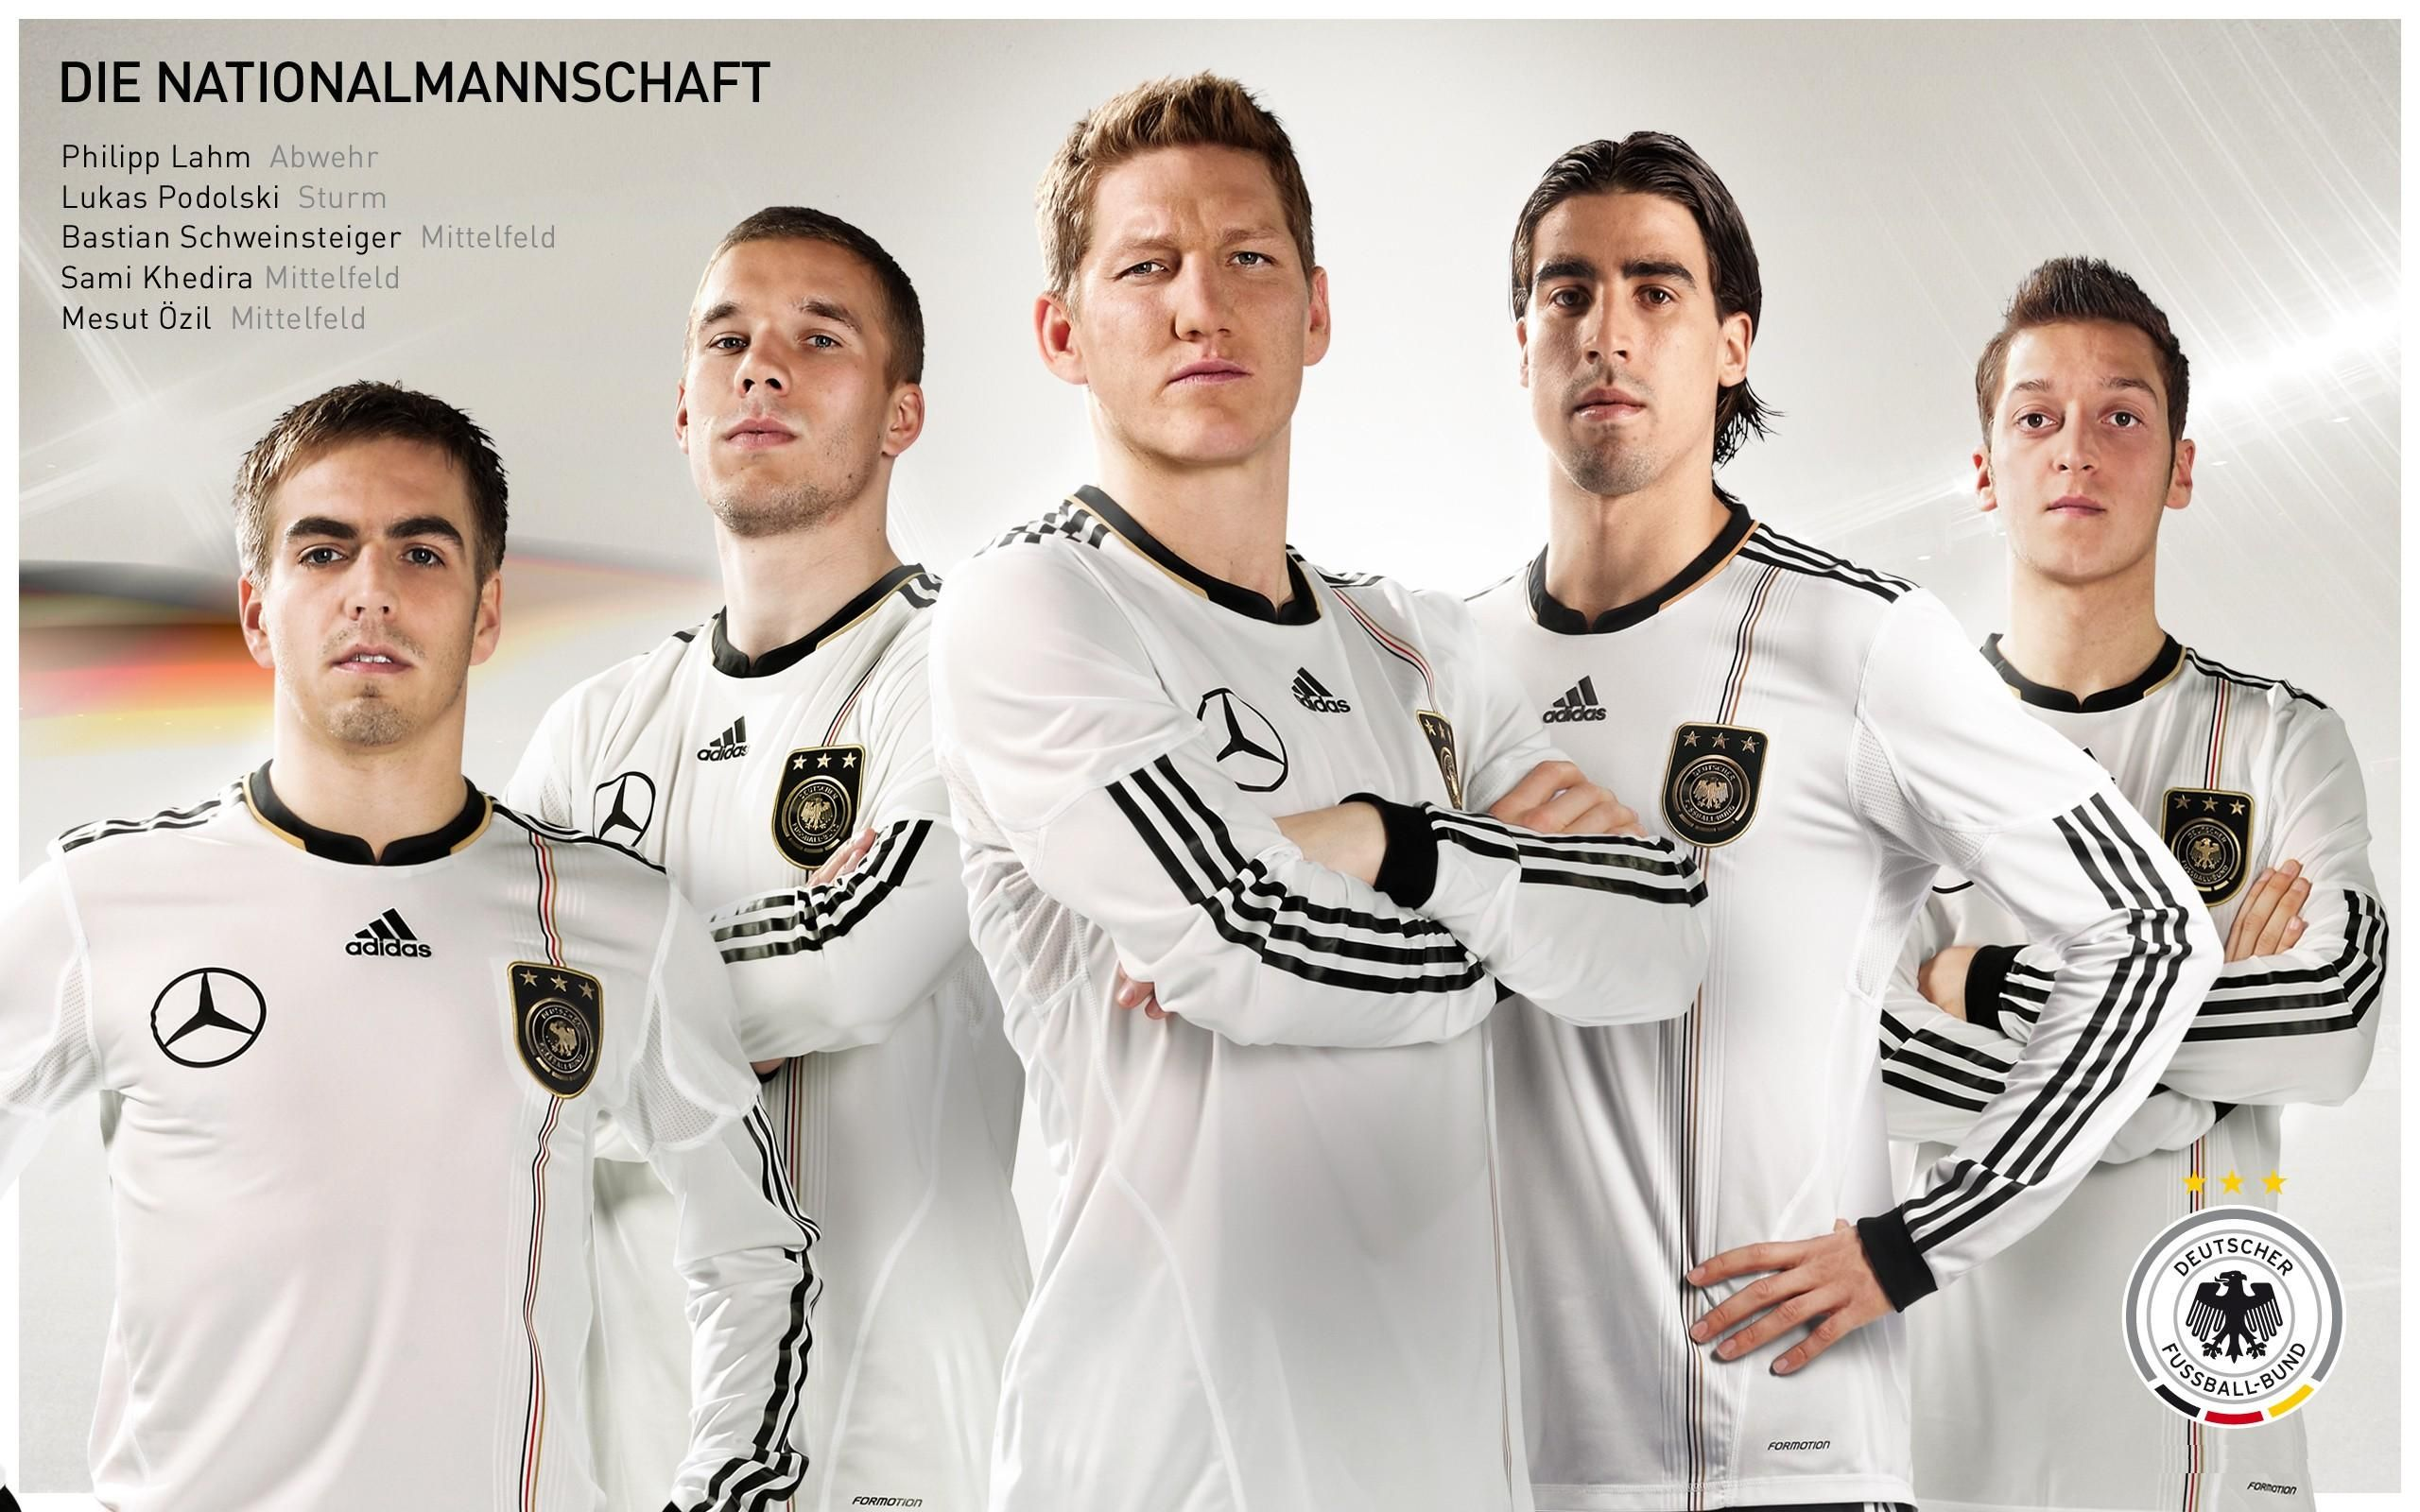 5157a7549306 5 Lessons Every Business Owners Should Learn From German Football Team  Germany Football Team